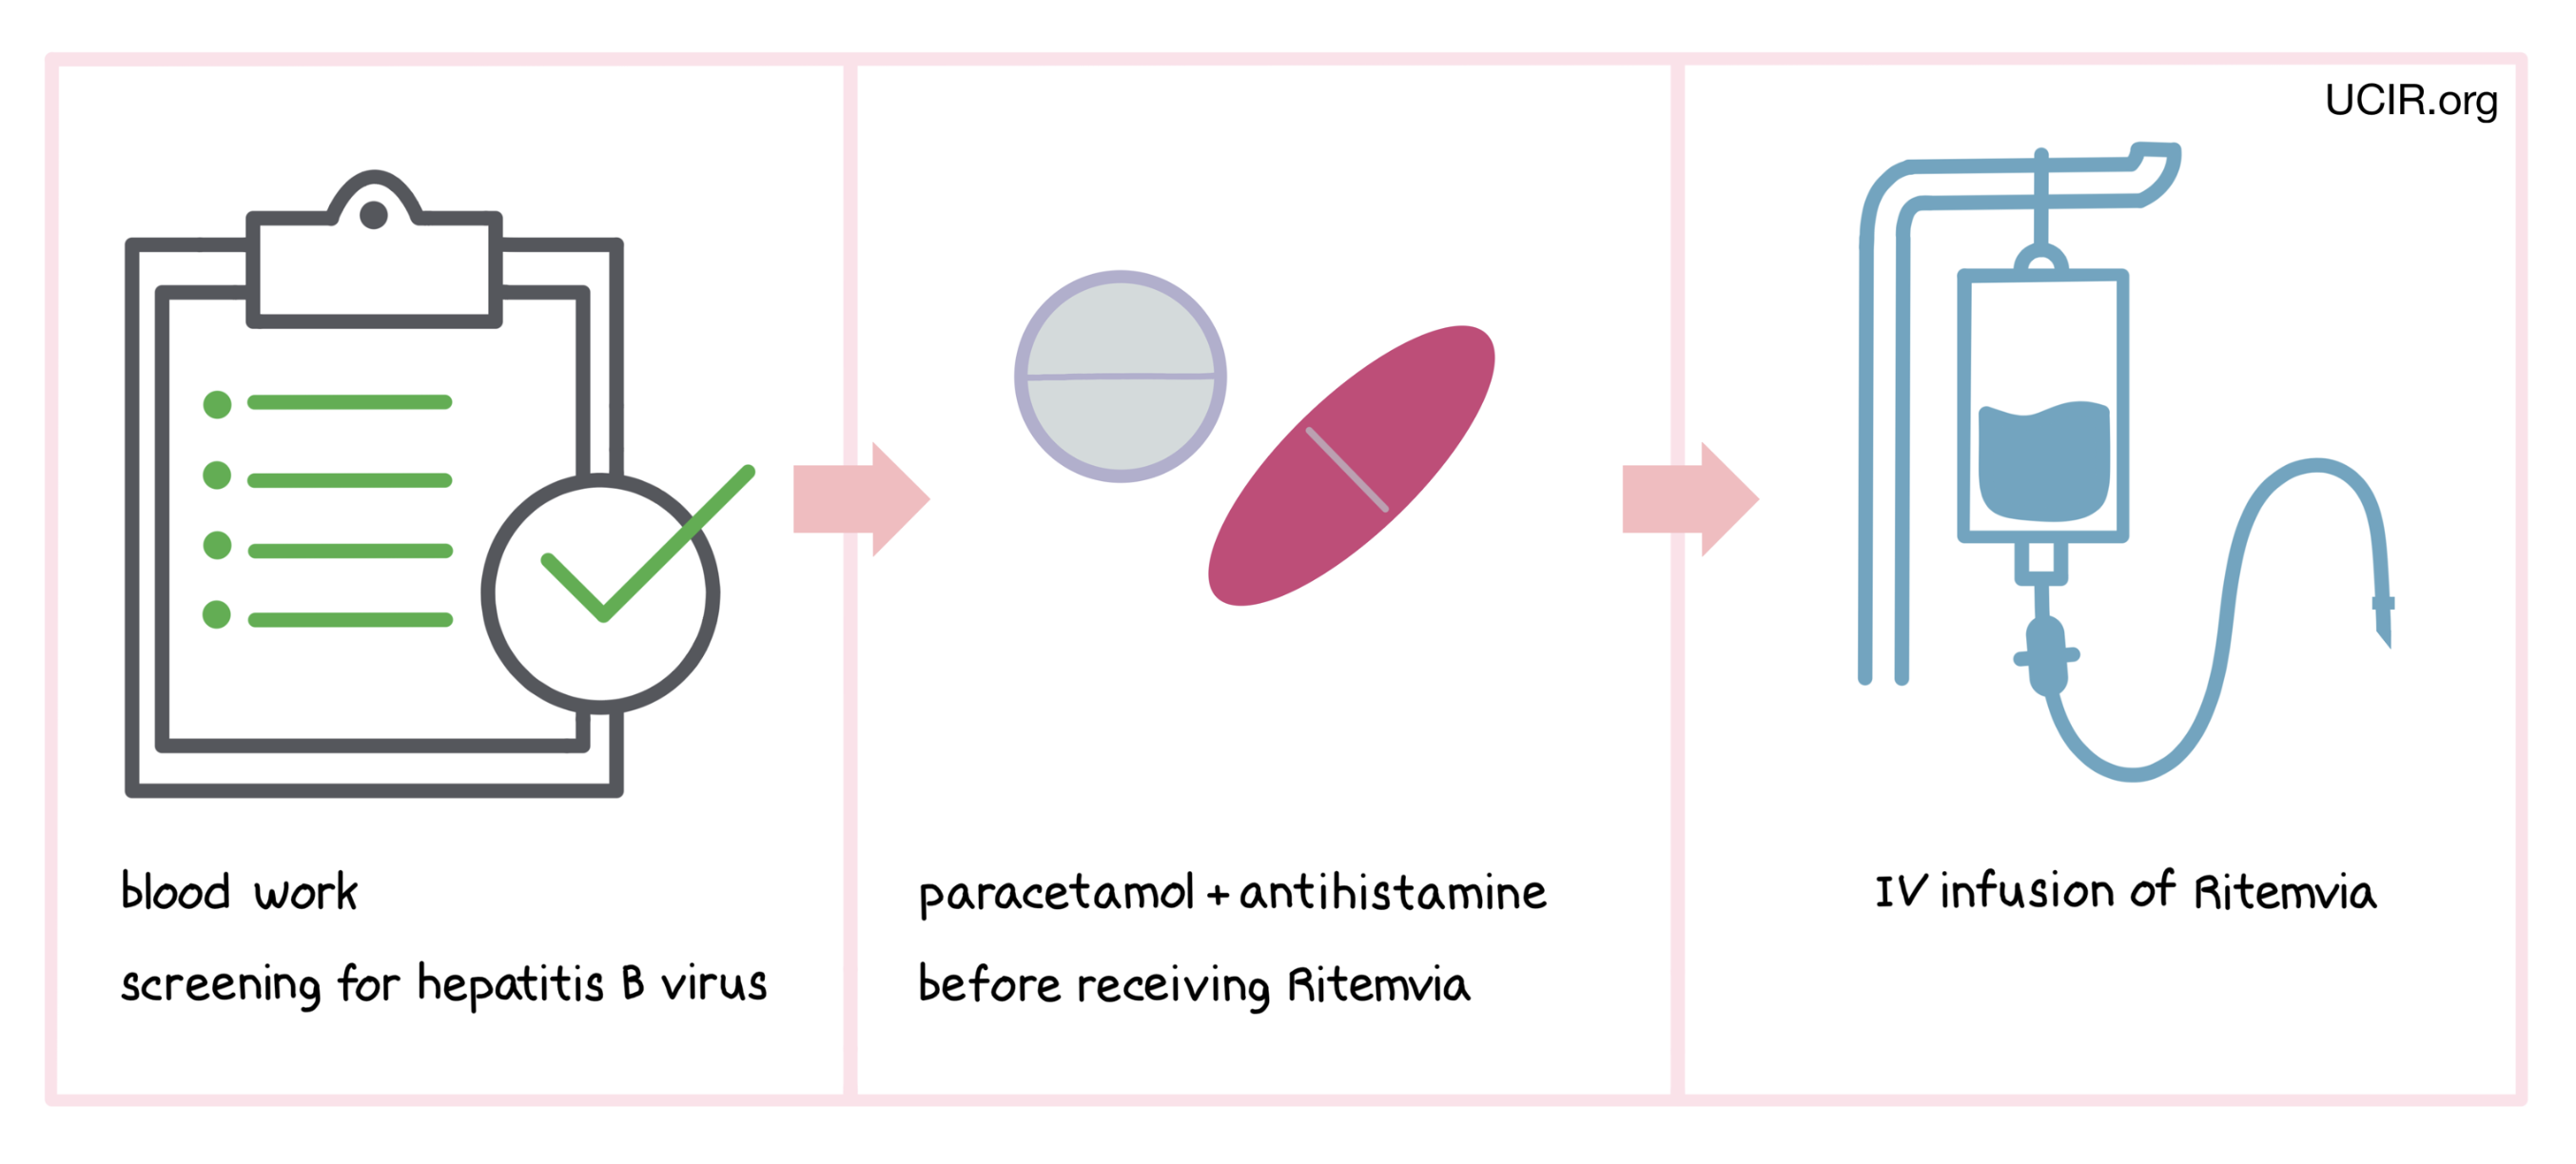 Illustration showing how Ritemvia is administered to patients